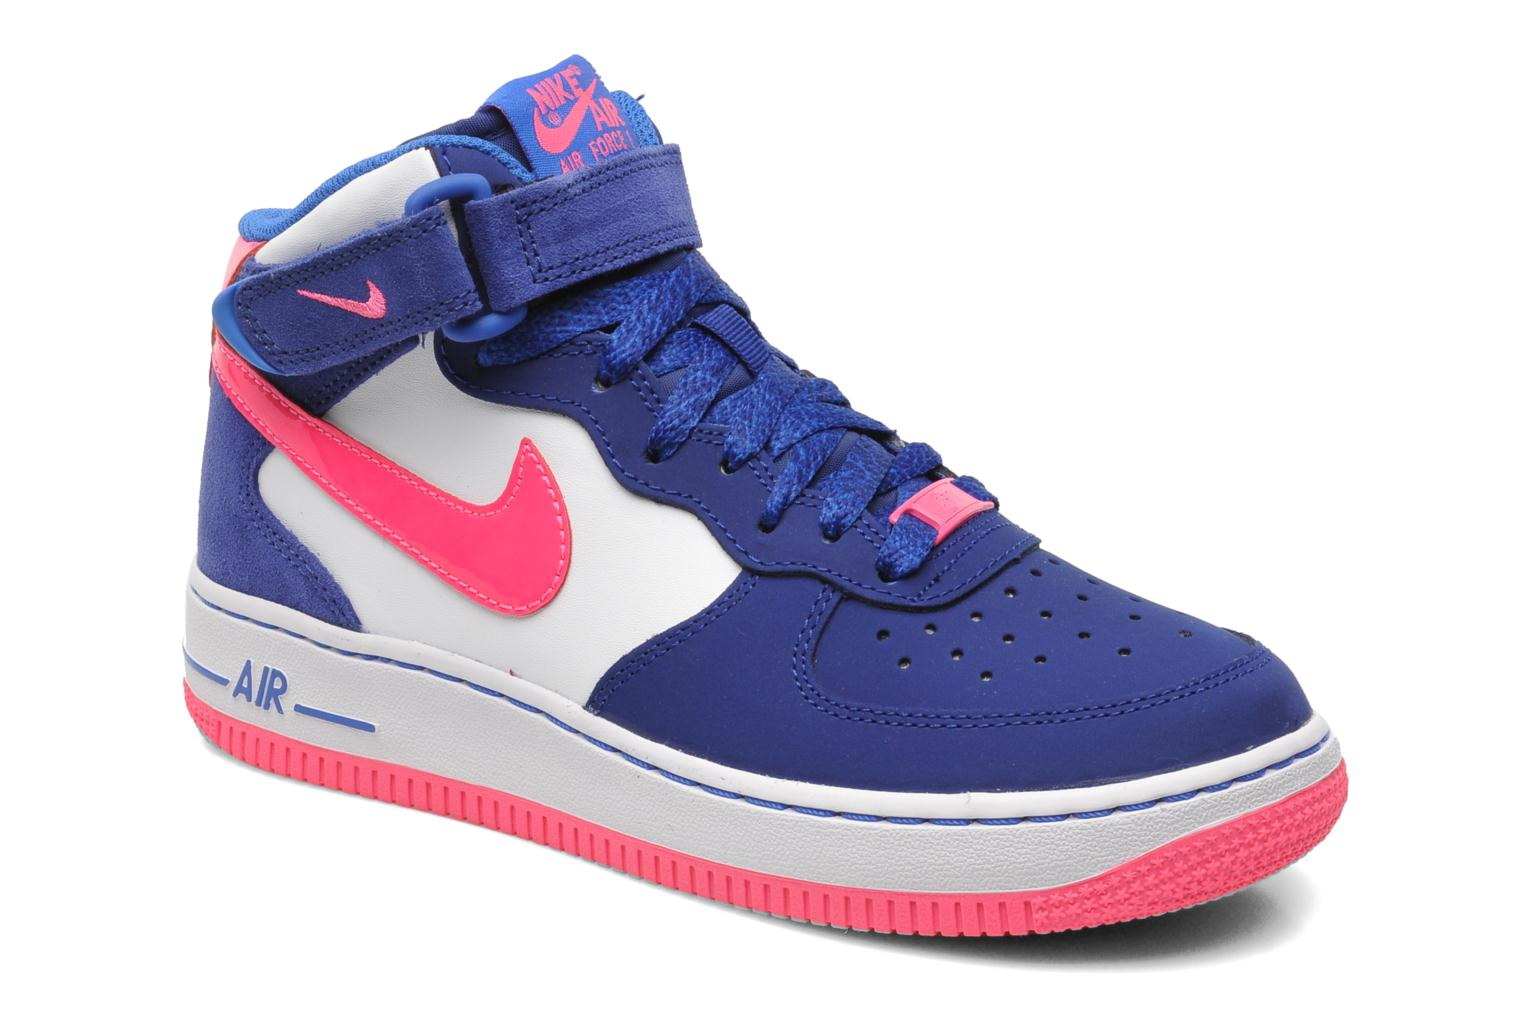 nike air force 1 mid gs sport shoes in white at 197869. Black Bedroom Furniture Sets. Home Design Ideas